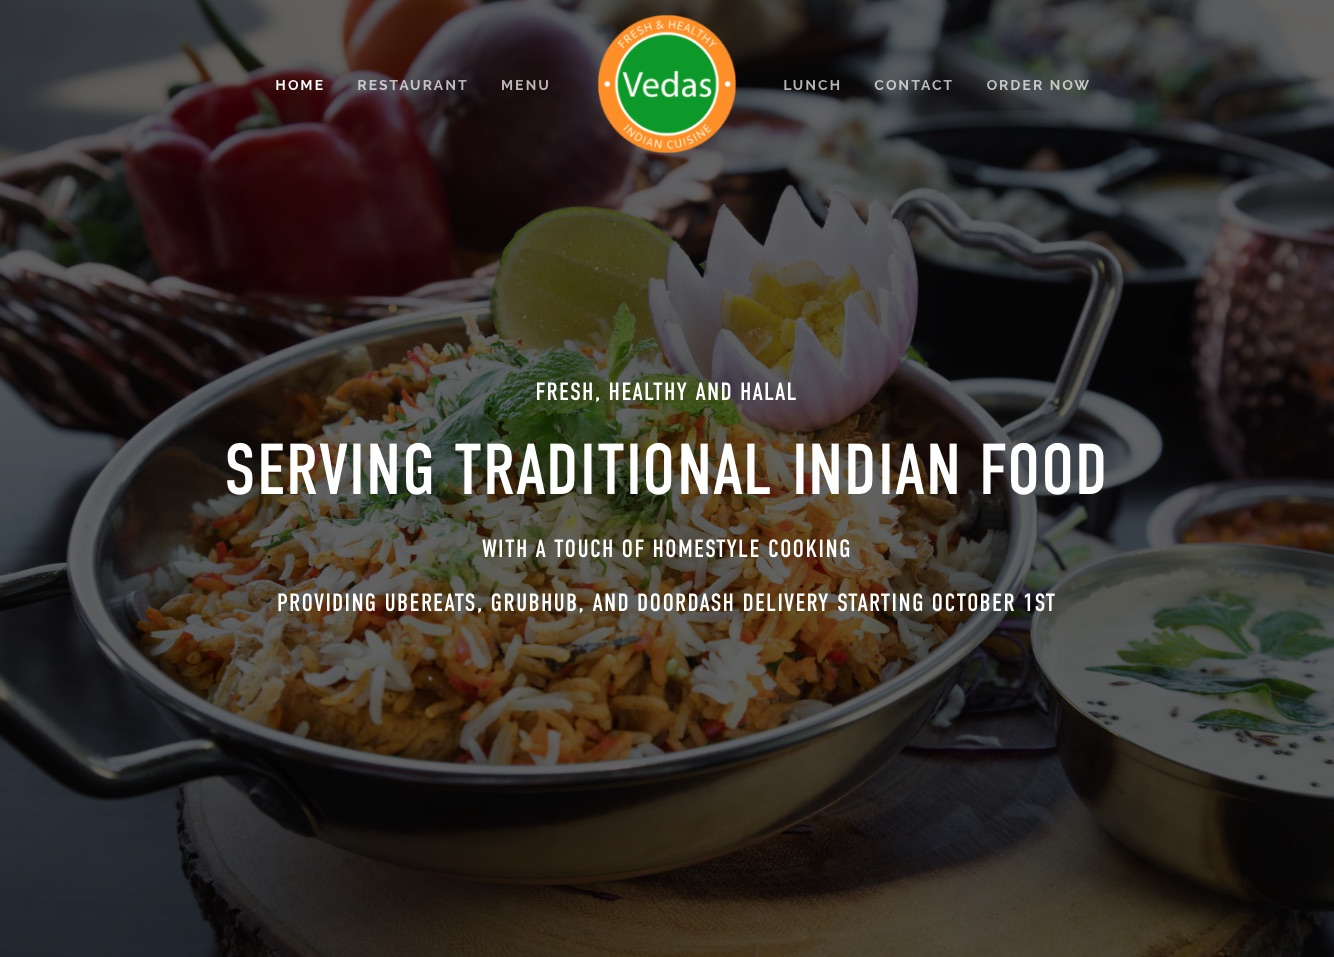 vedas-indian-cuisine-project.jpg